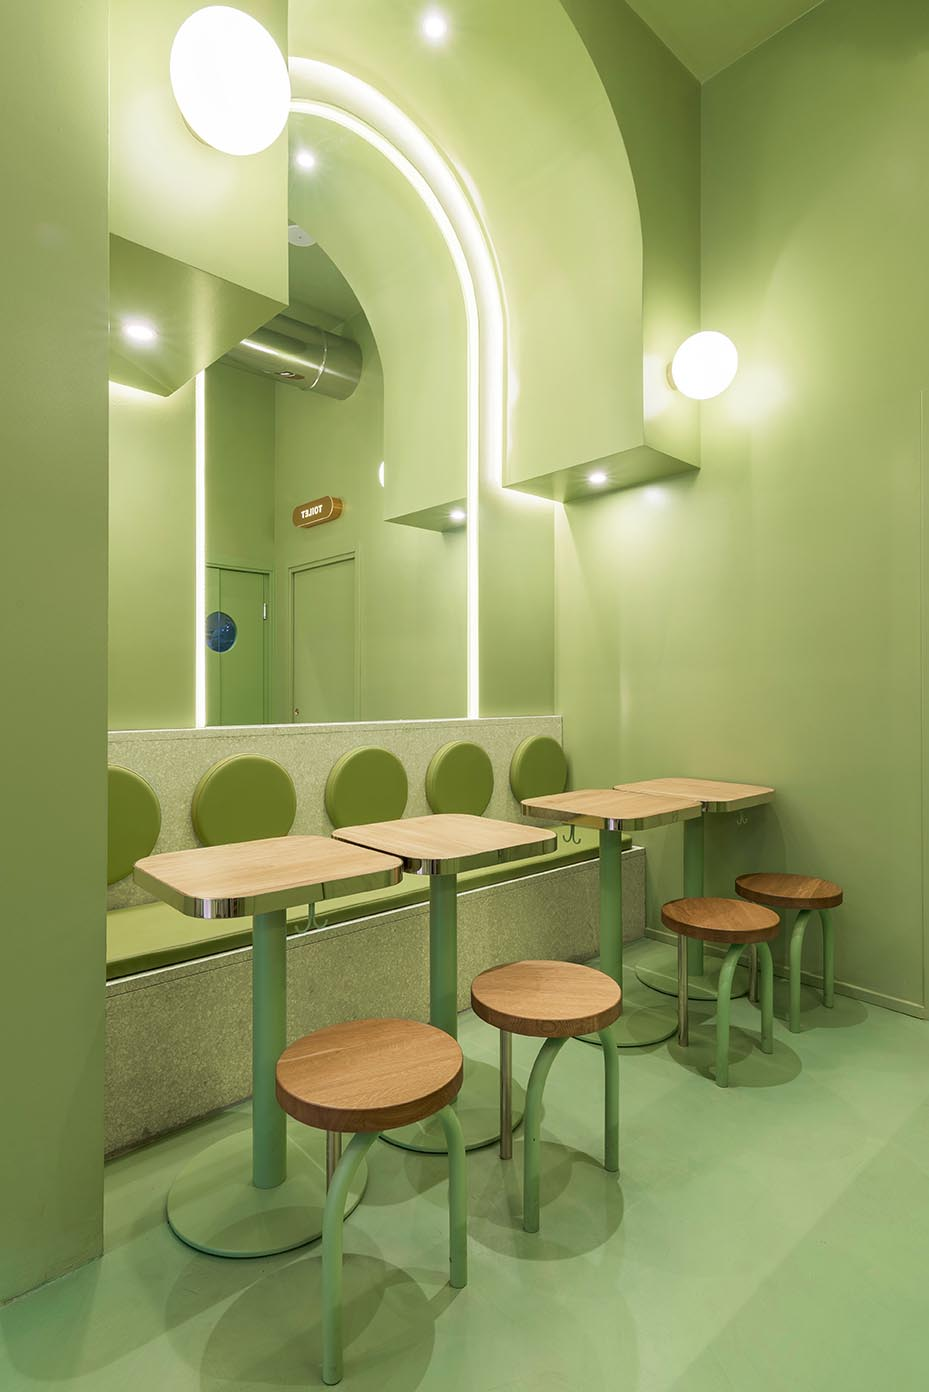 A new restaurant in Milan, Italy, uses a colorful green interior design to draw people inside.